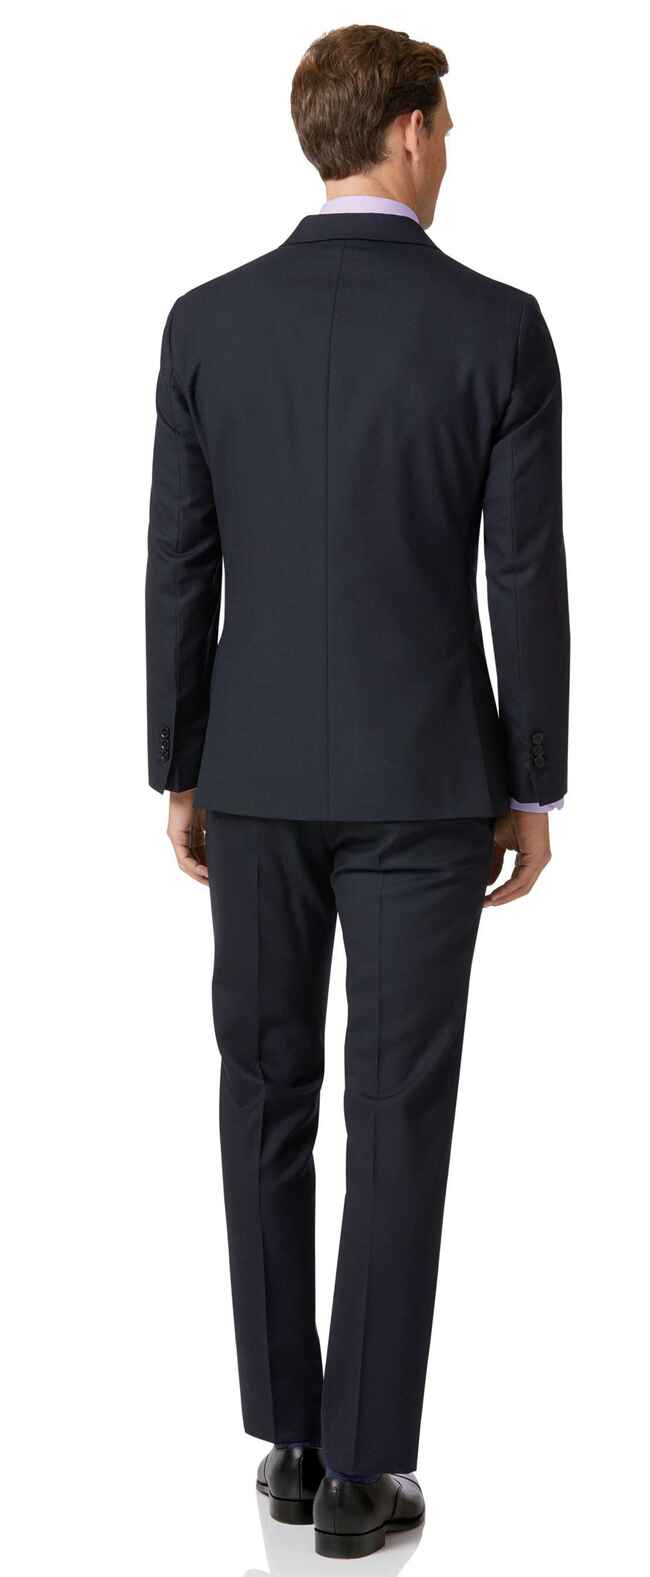 Costume business bleu nuit en laine mérinos slim fit à double boutonnage